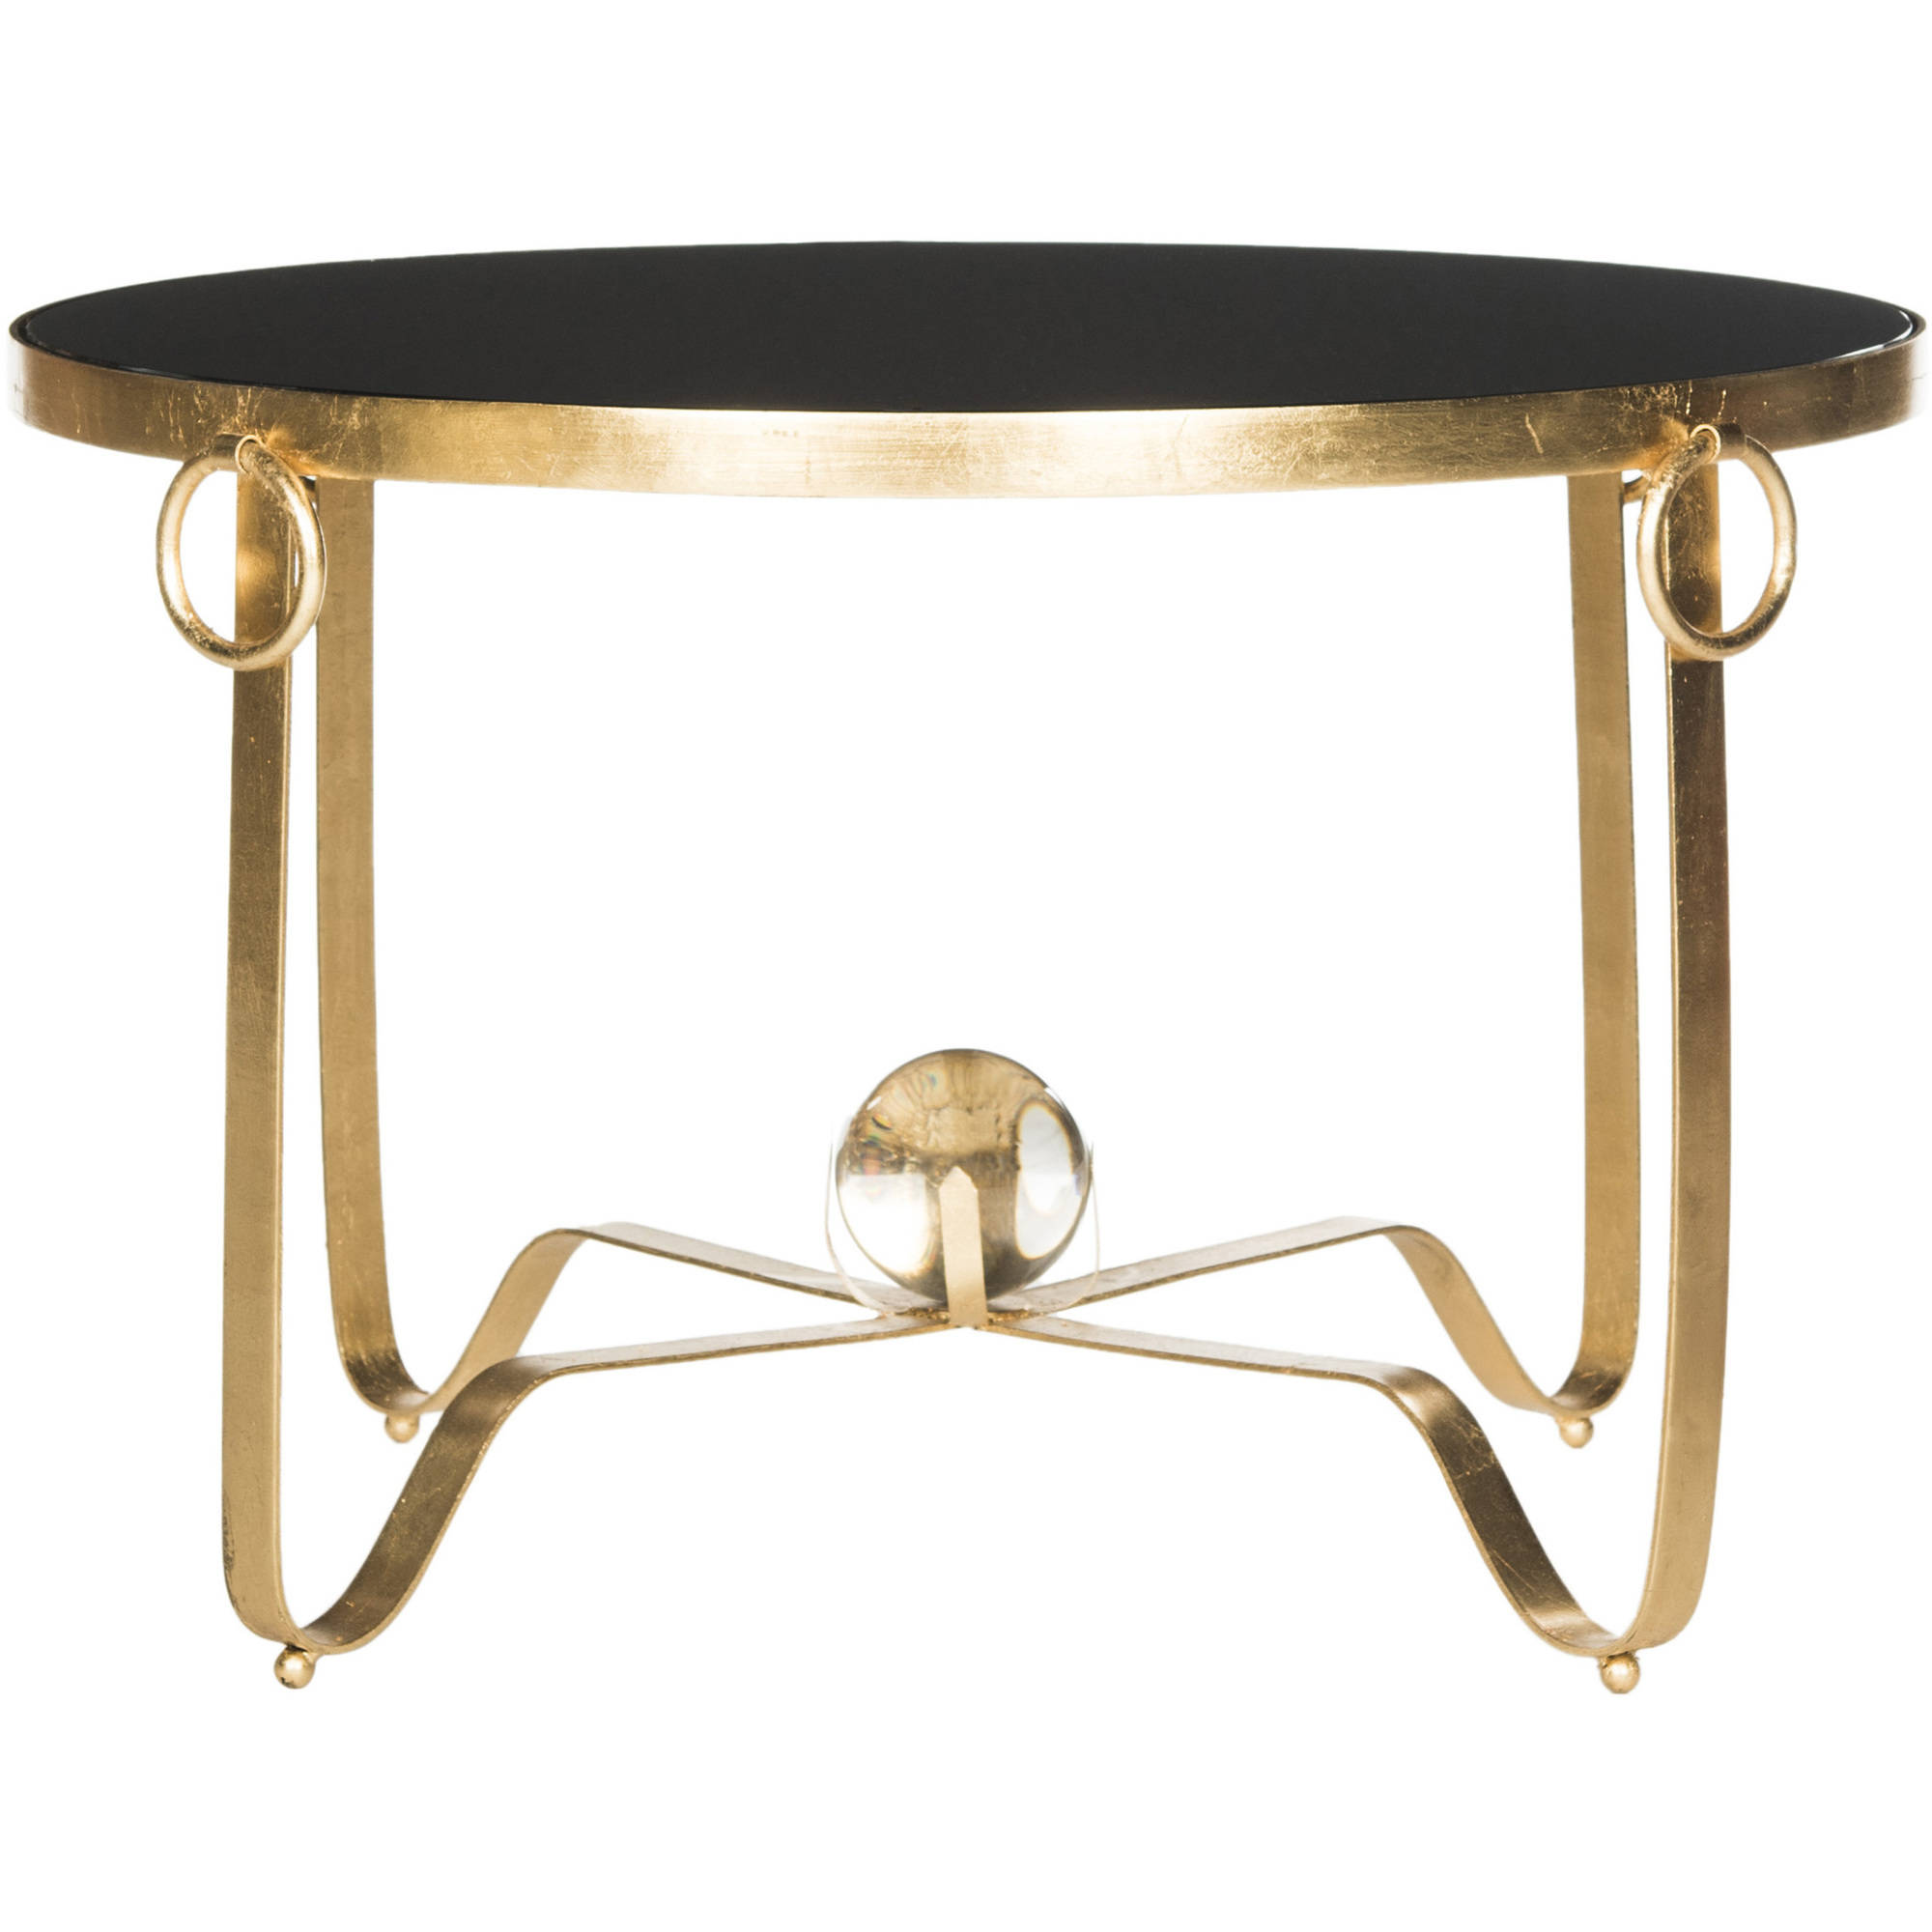 "Safavieh Elisha 28"" Round Coffee Table with Glass Ball, Gold Leaf"